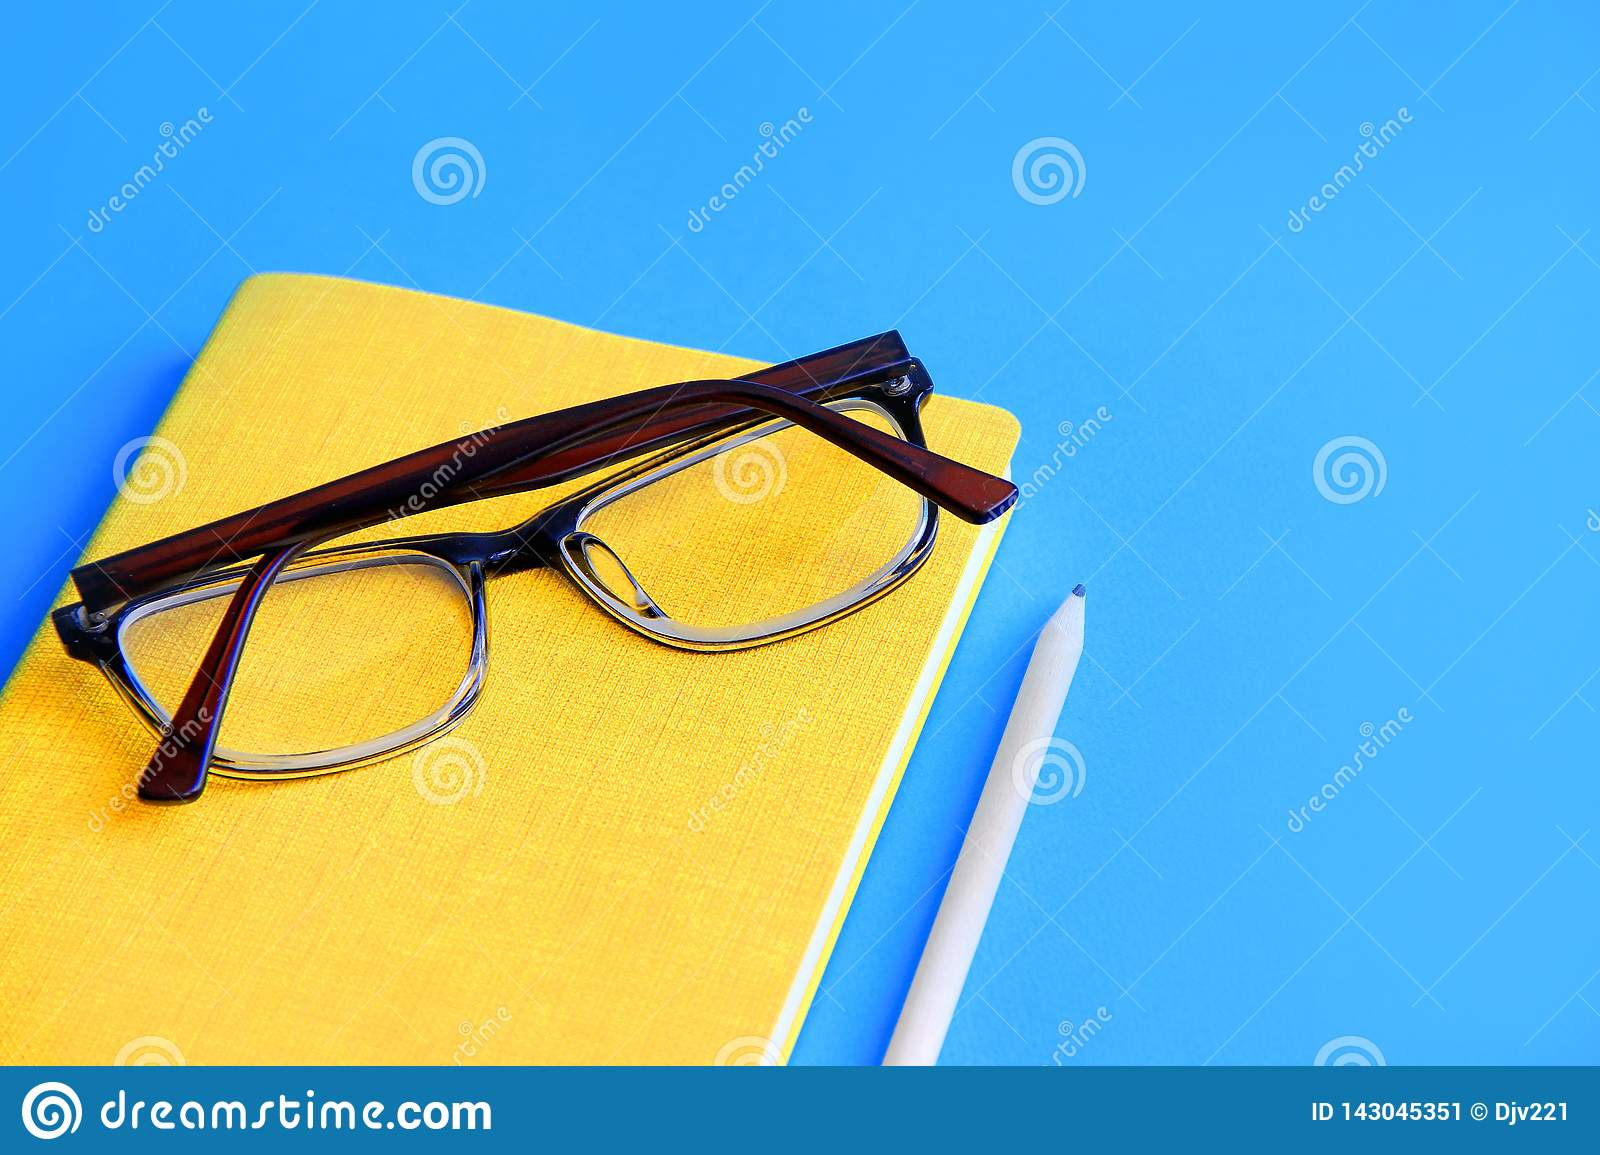 diary on it are glasses next to a pencil on a blue background